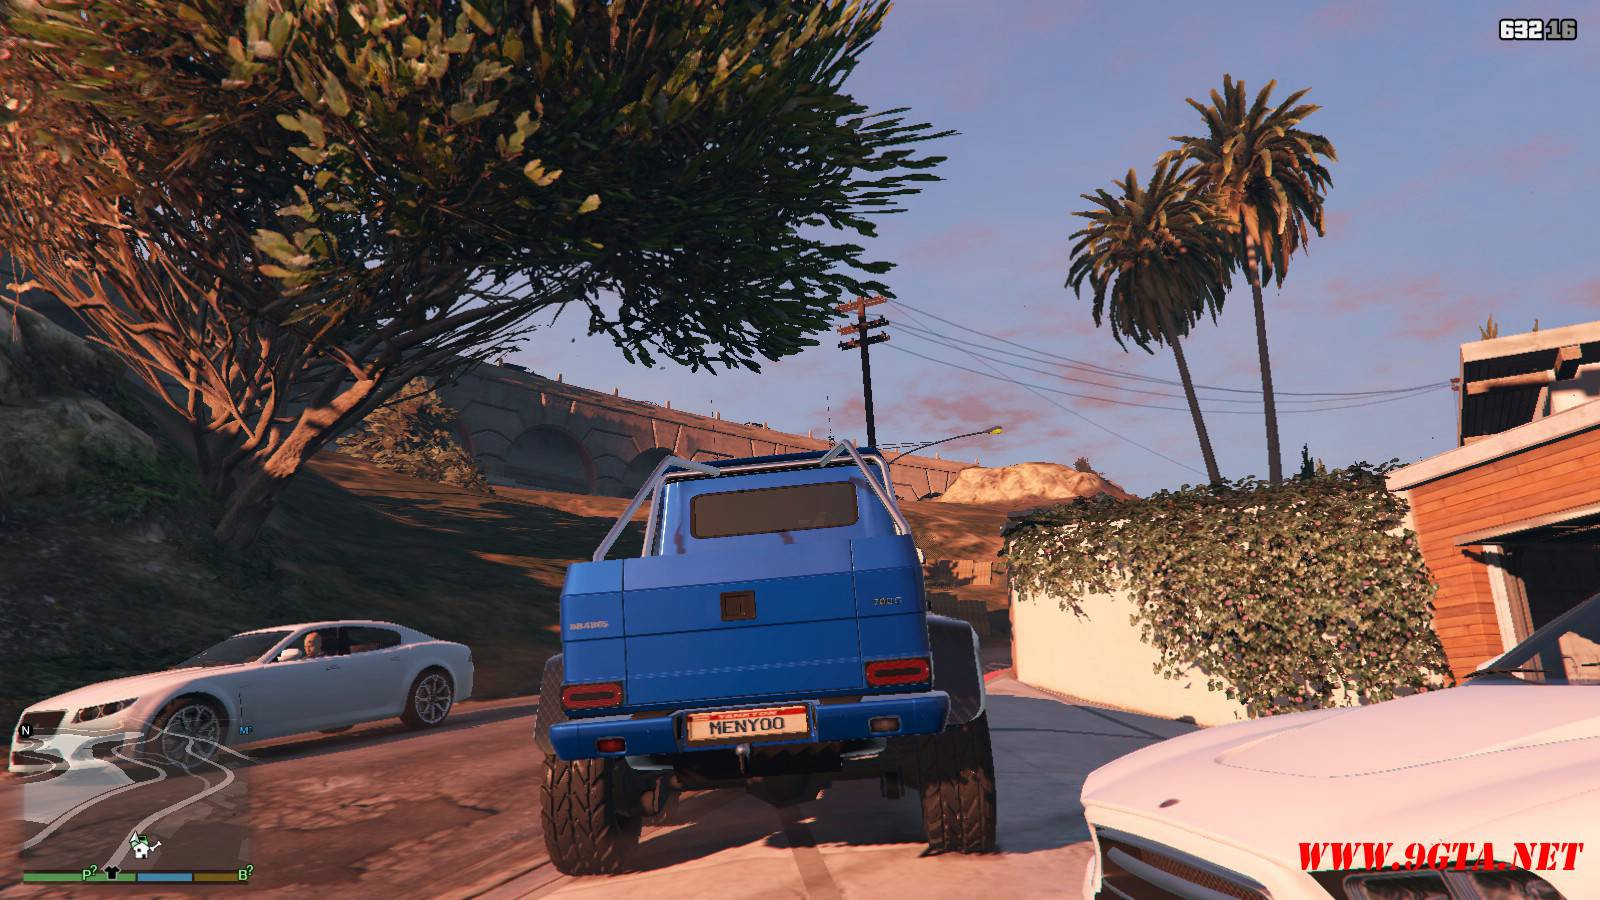 Barbus 700 G63 AMG GTA5 Mods (3)